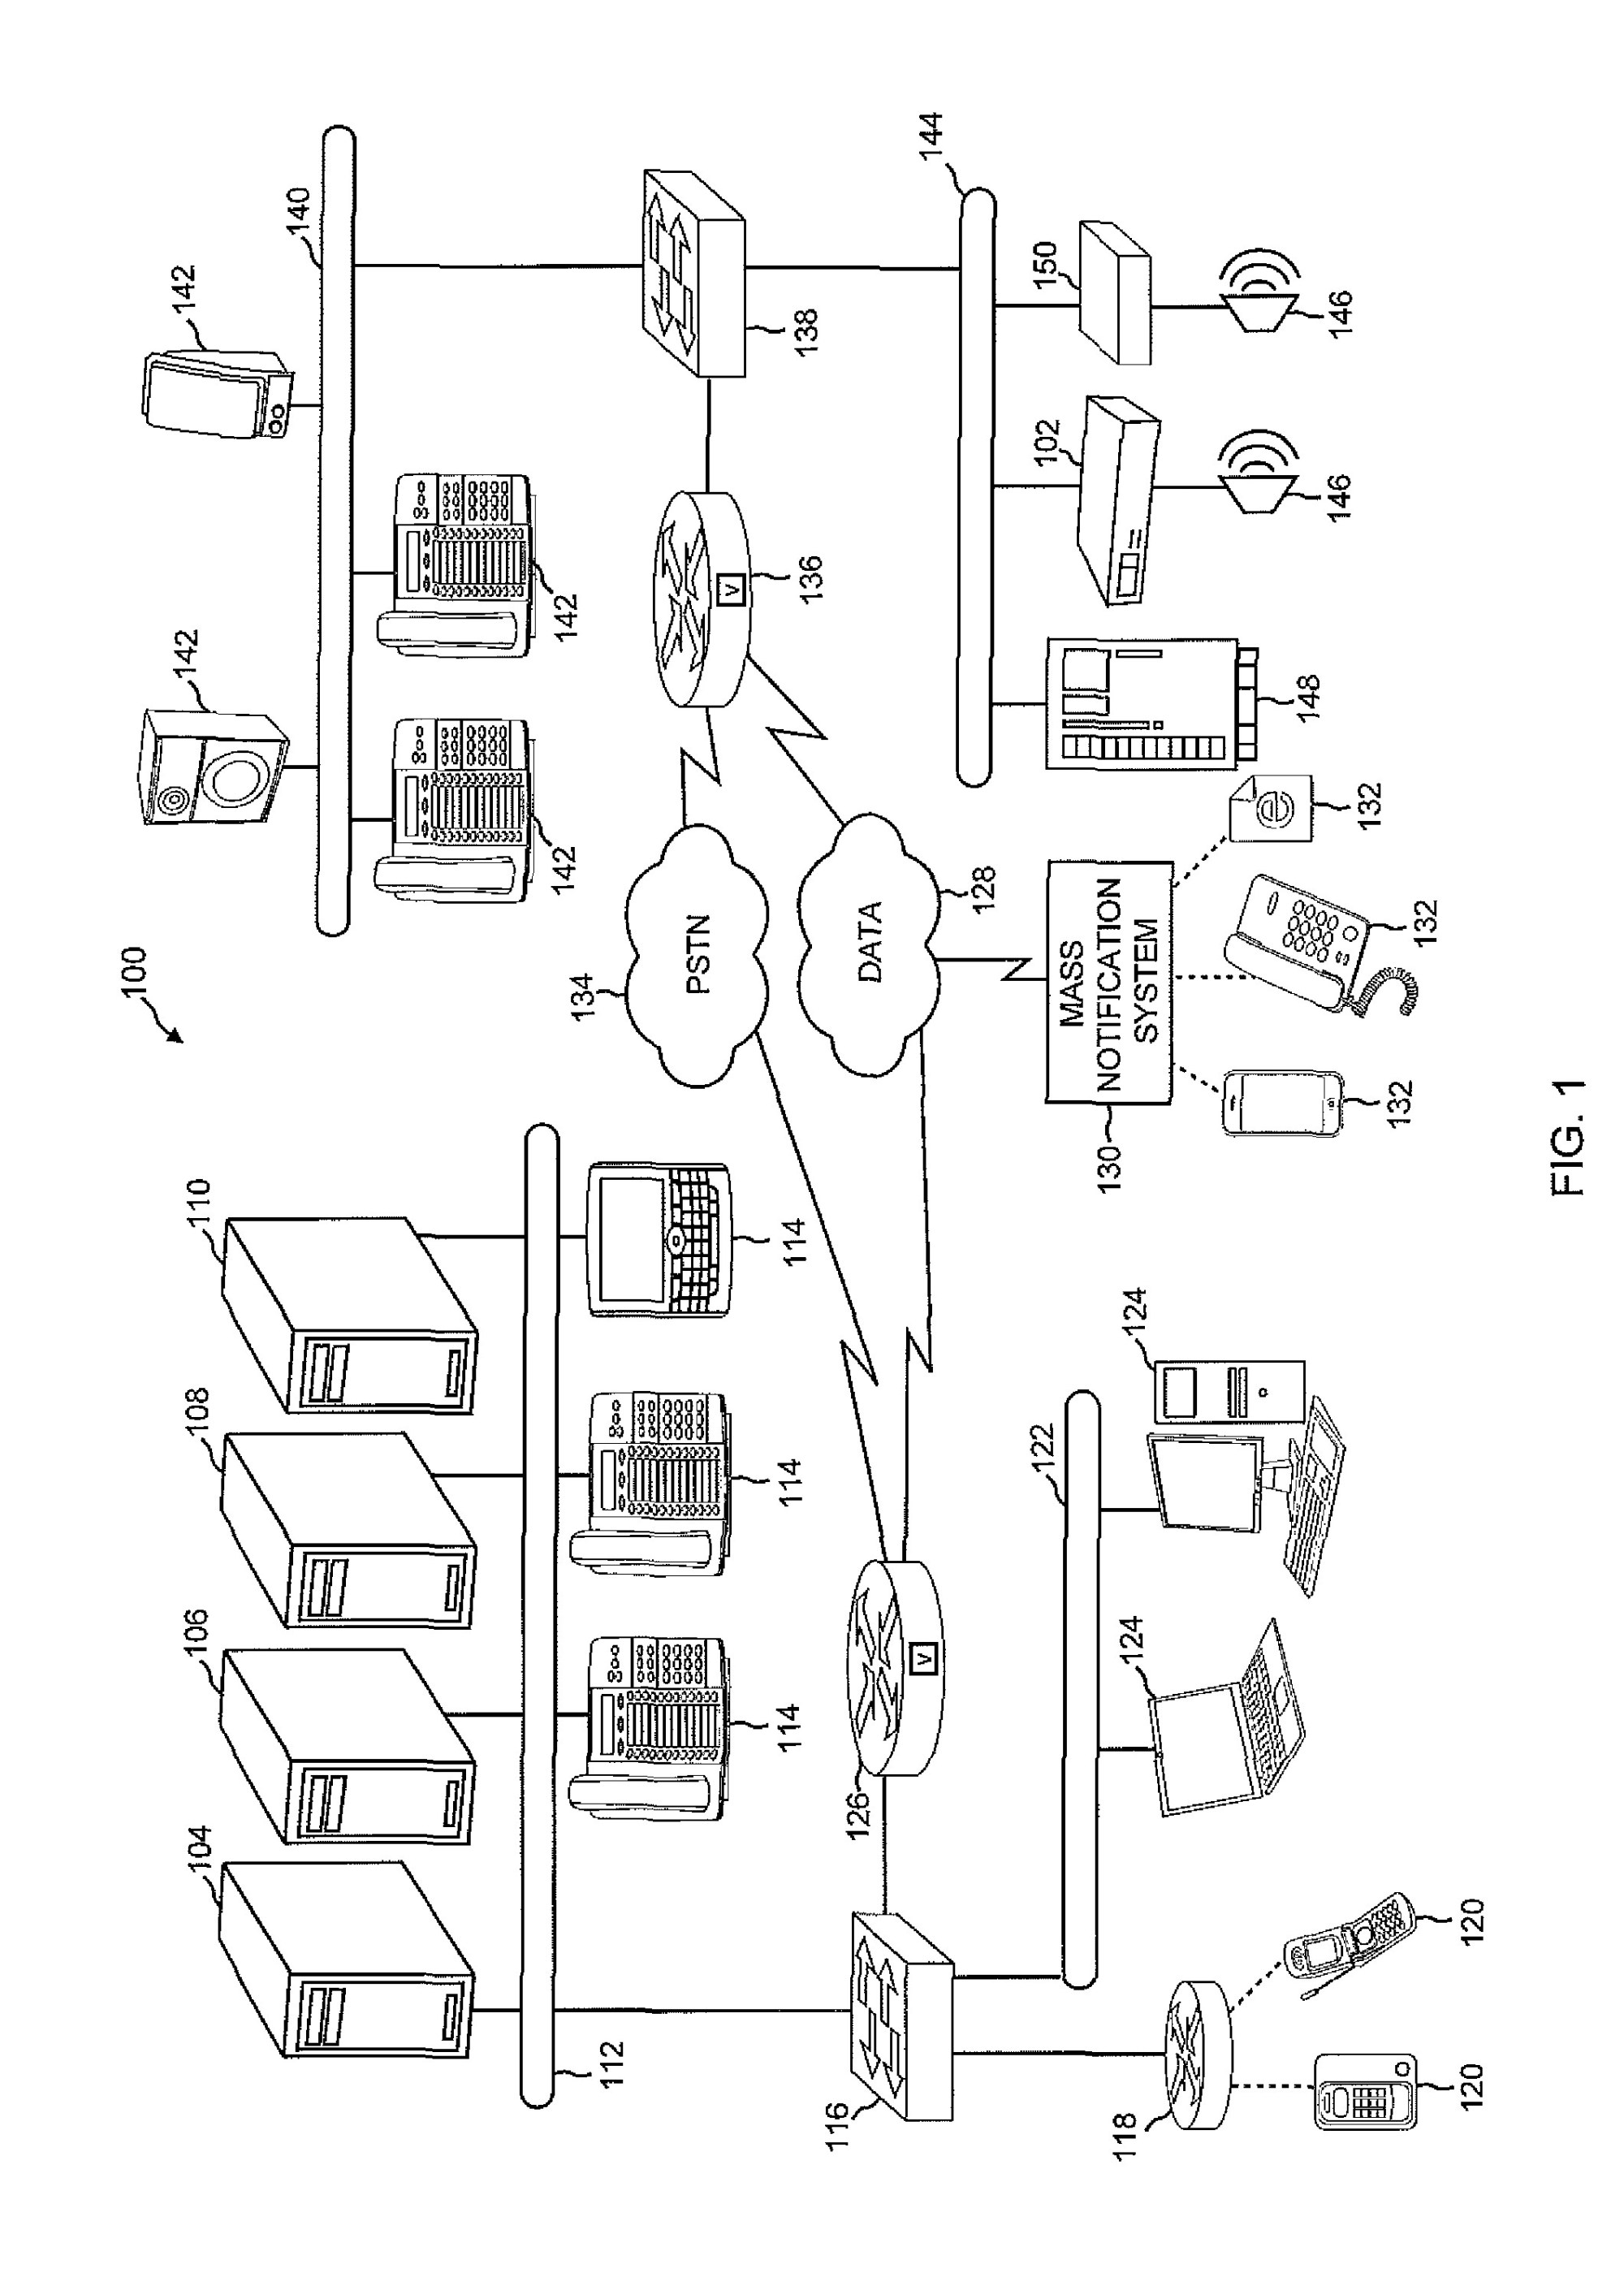 hight resolution of valcom paging horn wiring diagram val paging horn wiring diagram download val paging horn wiring